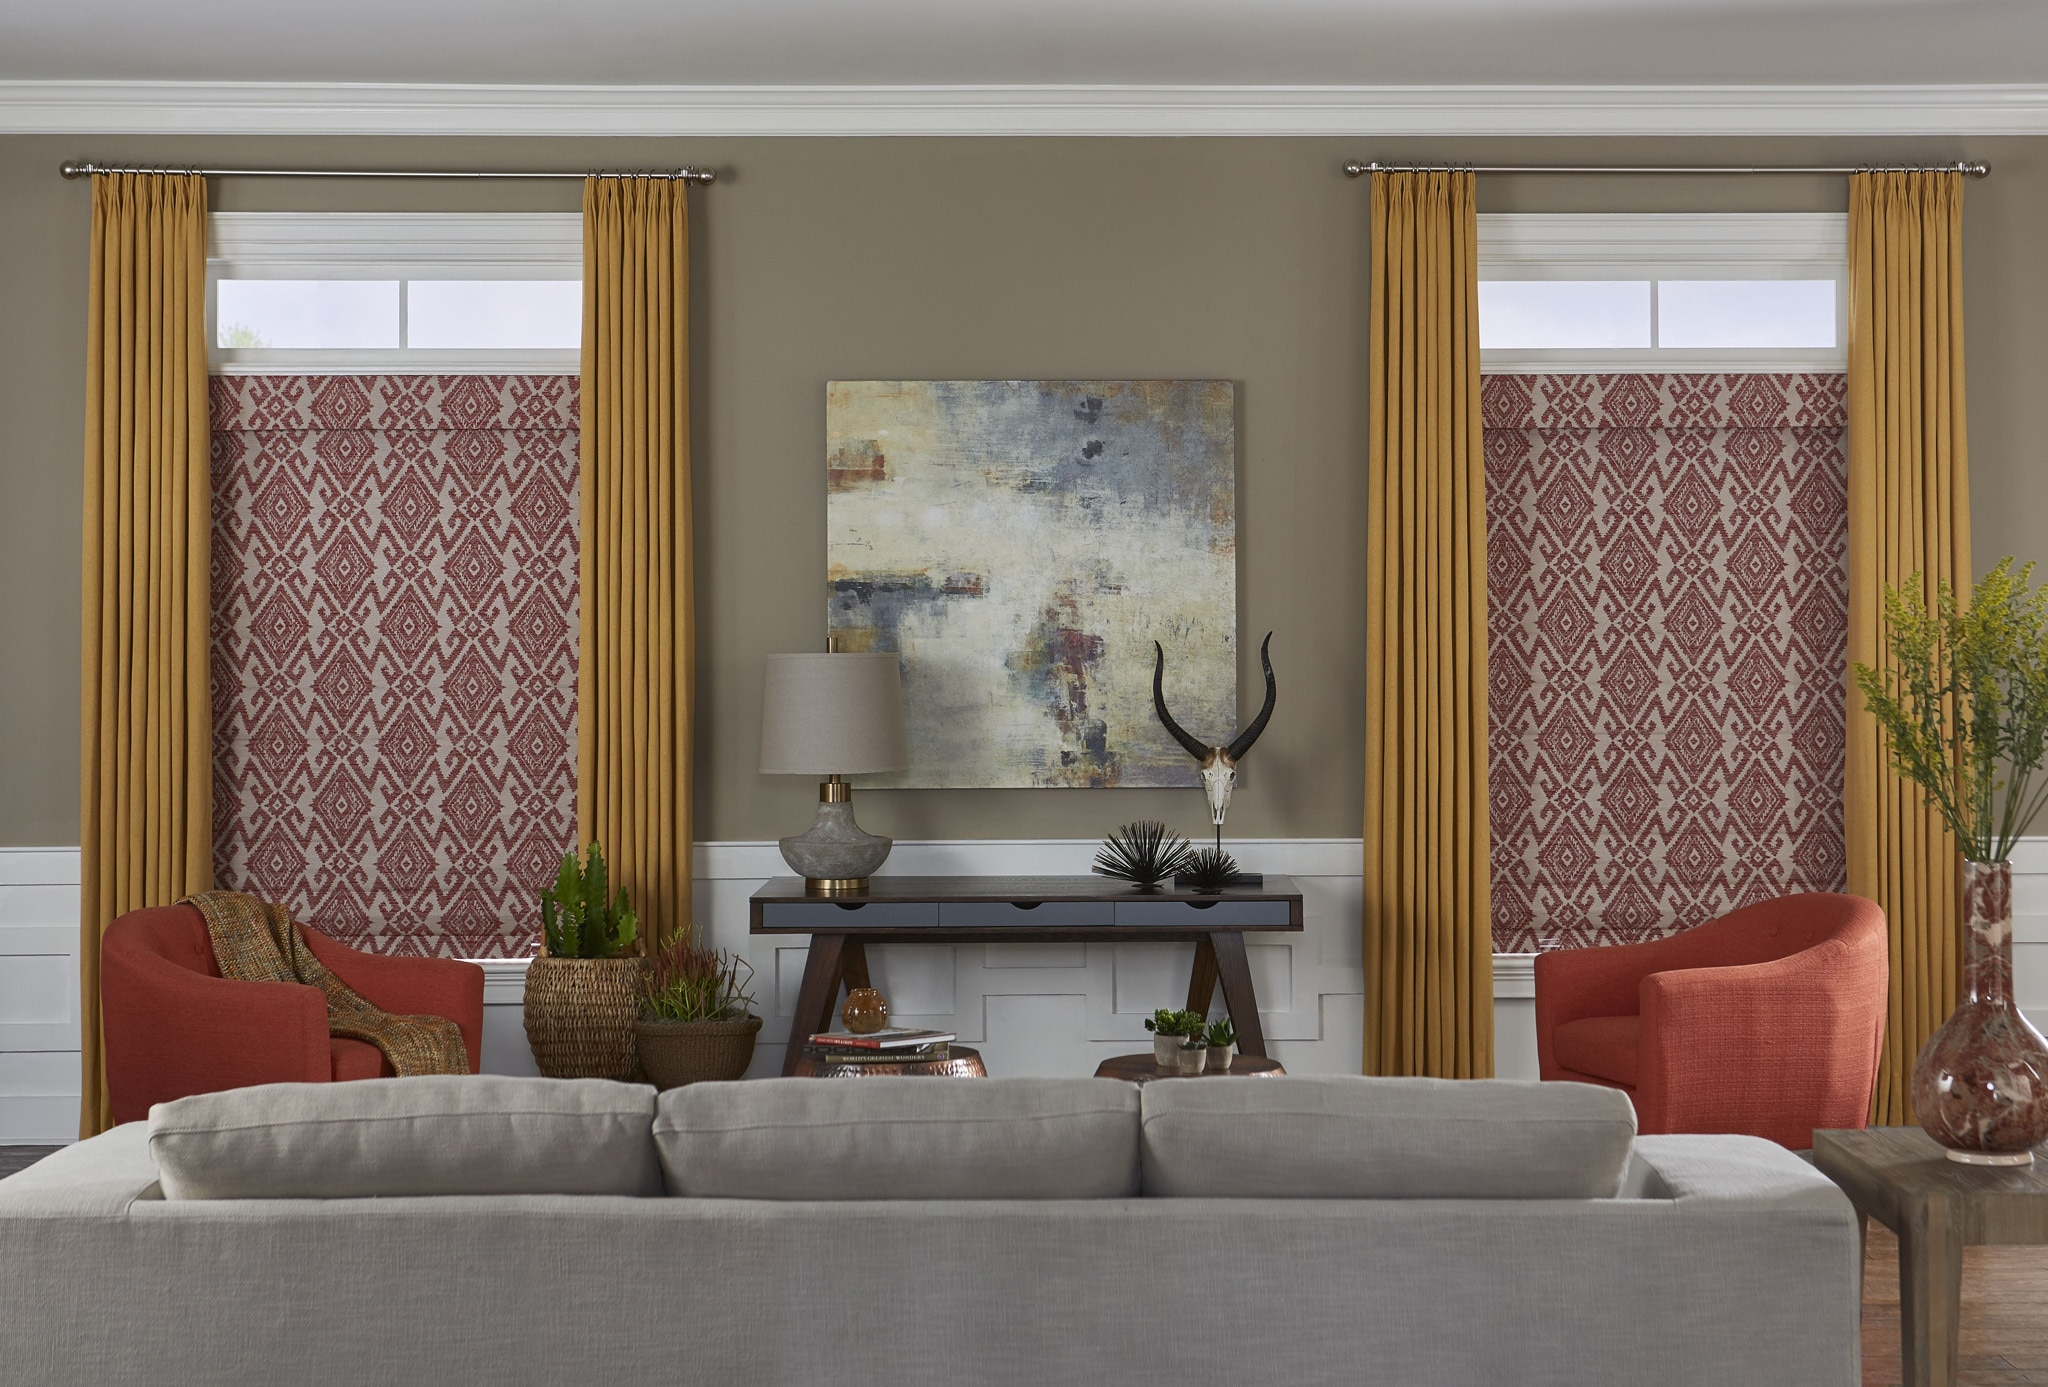 roman room bamboo tips shades win myhomedesign darkening lowes blinds